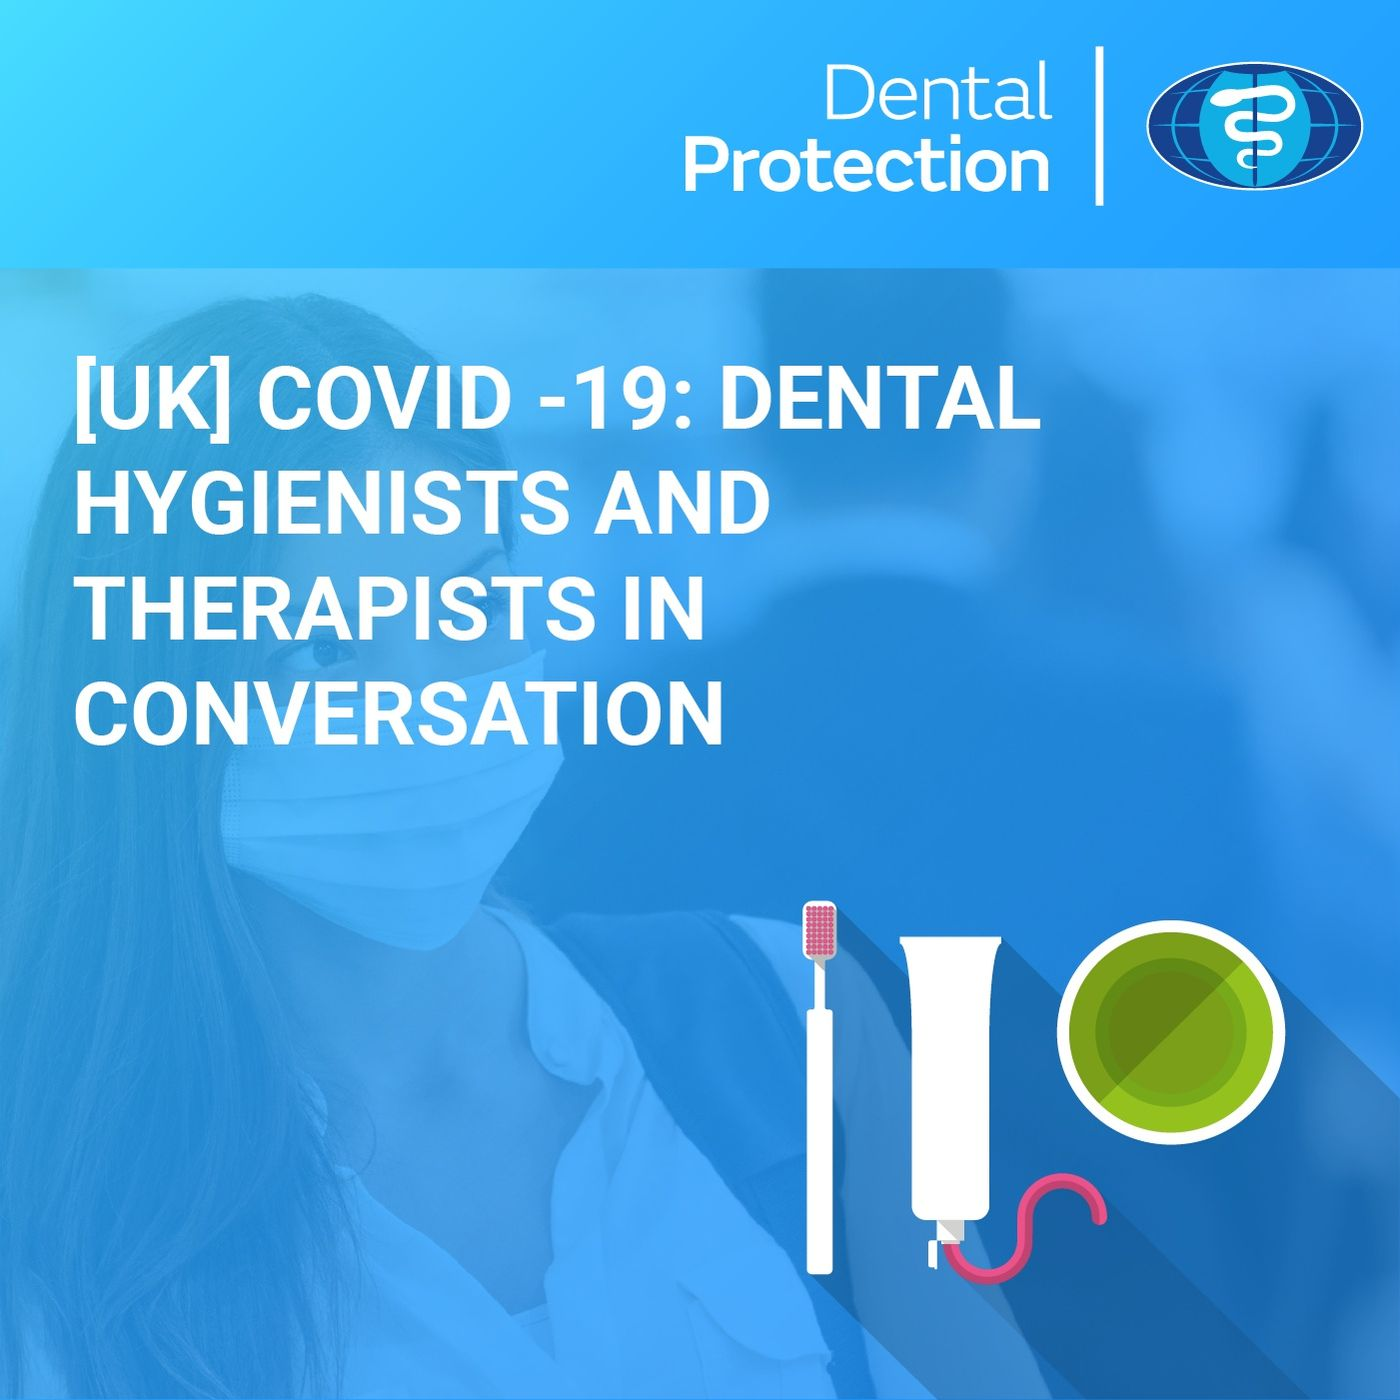 [UK] COVID-19: Dental Hygienists and Therapists in conversation